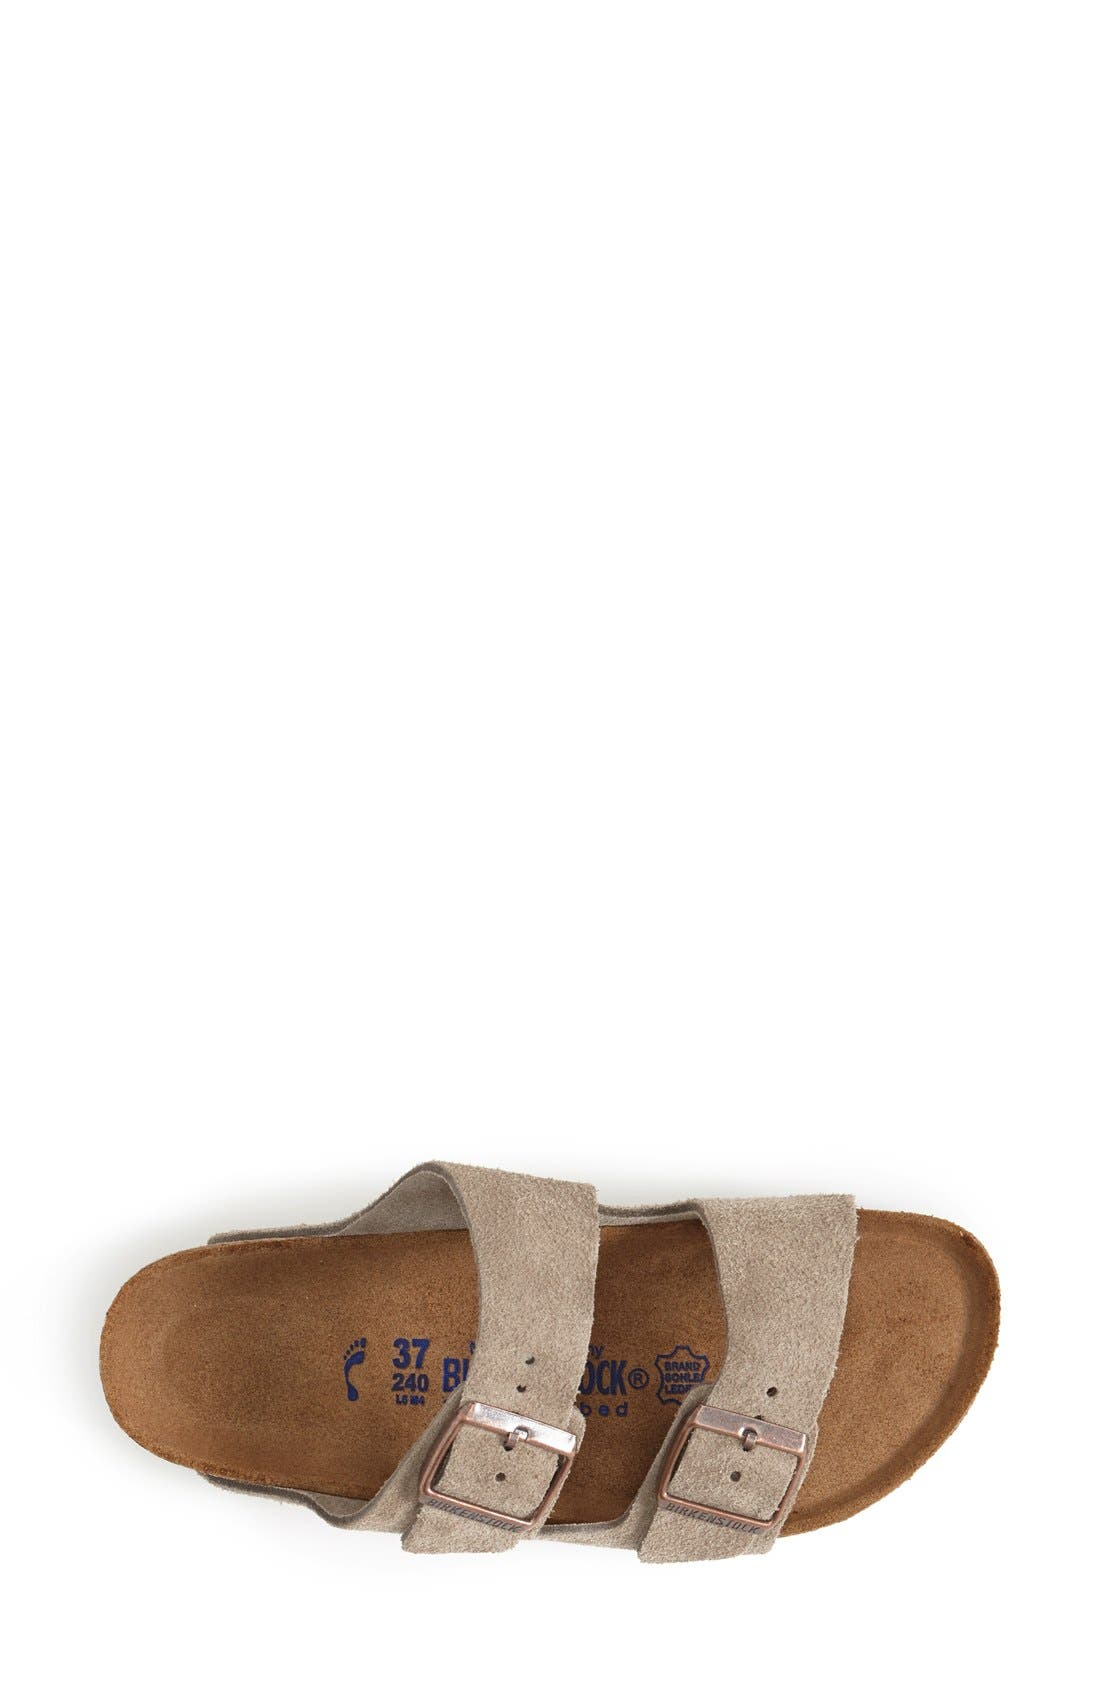 Alternate Image 3  - Birkenstock 'Arizona' Soft Footbed Suede Sandal (Women)